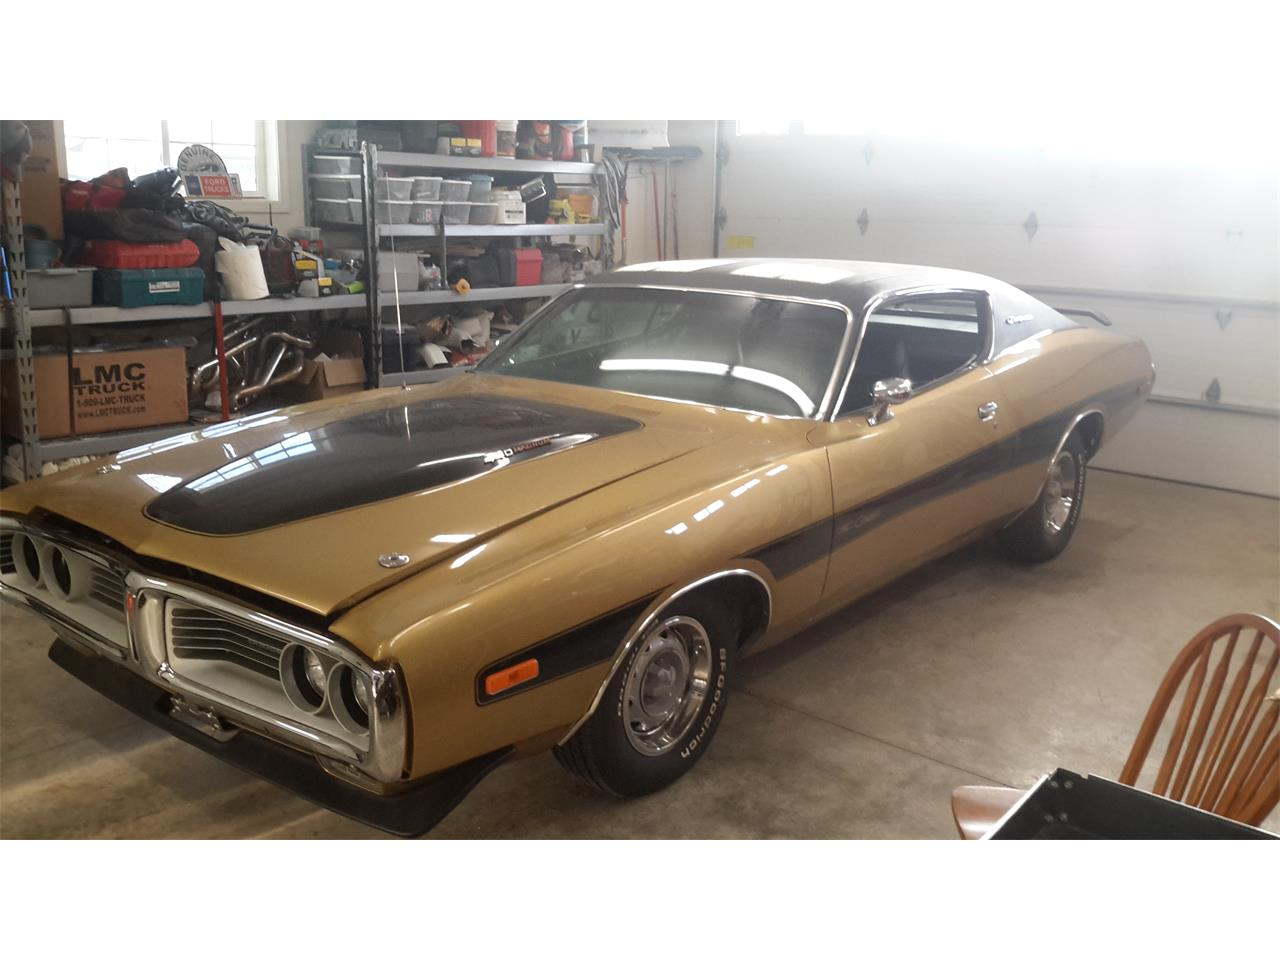 1972 Dodge Charger R T For Sale In Two Rivers Wi Classiccarsbay Com